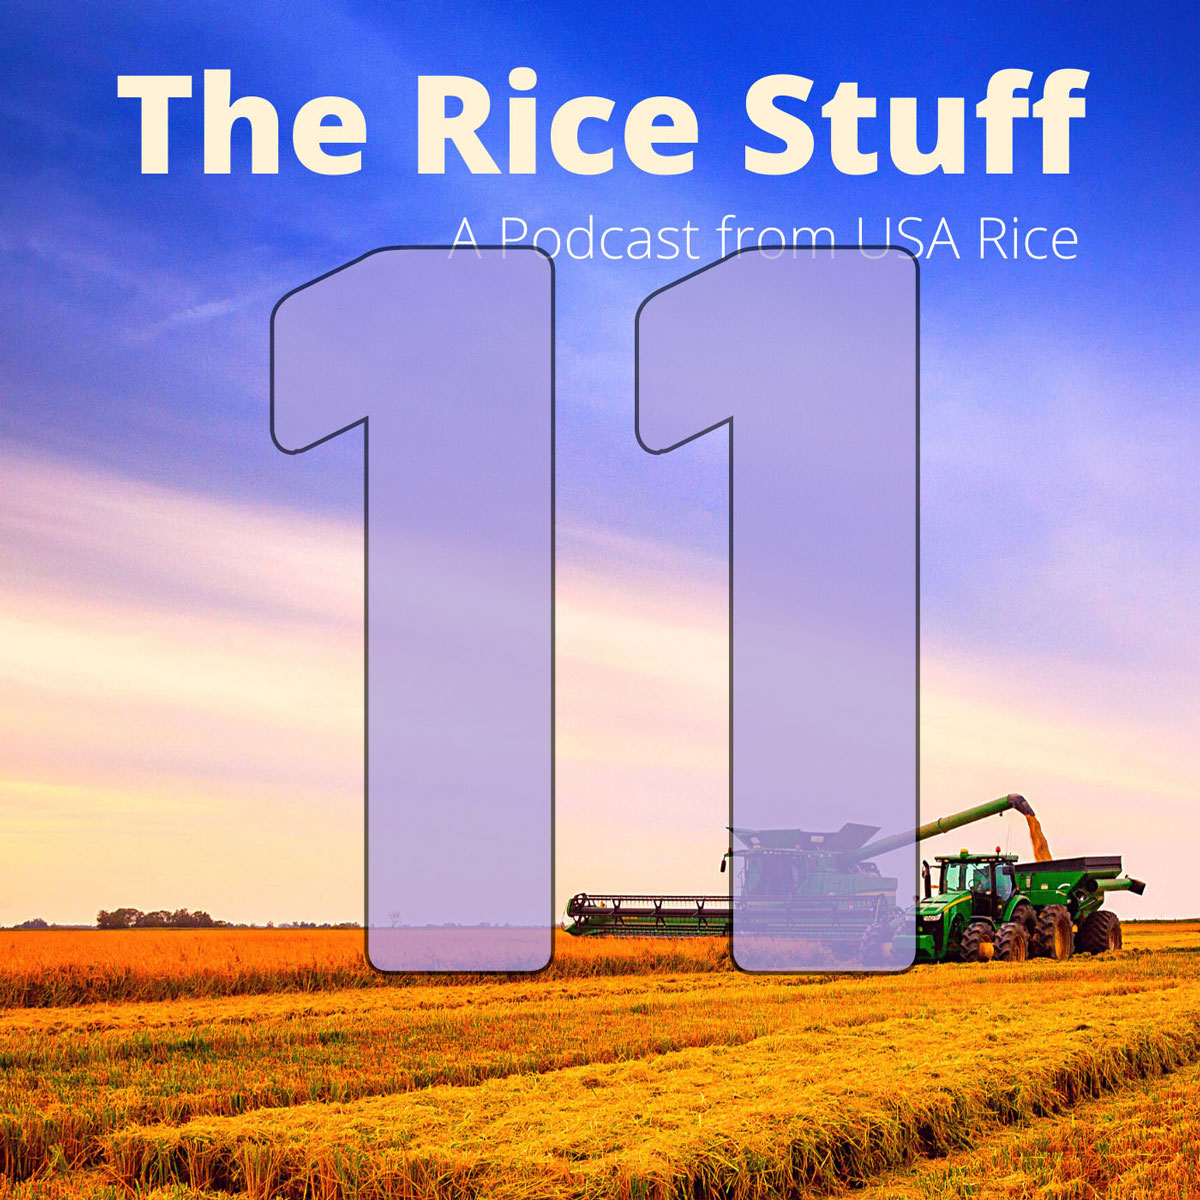 Number 11 superimposed over photo of combine and grain cart in mature rice field